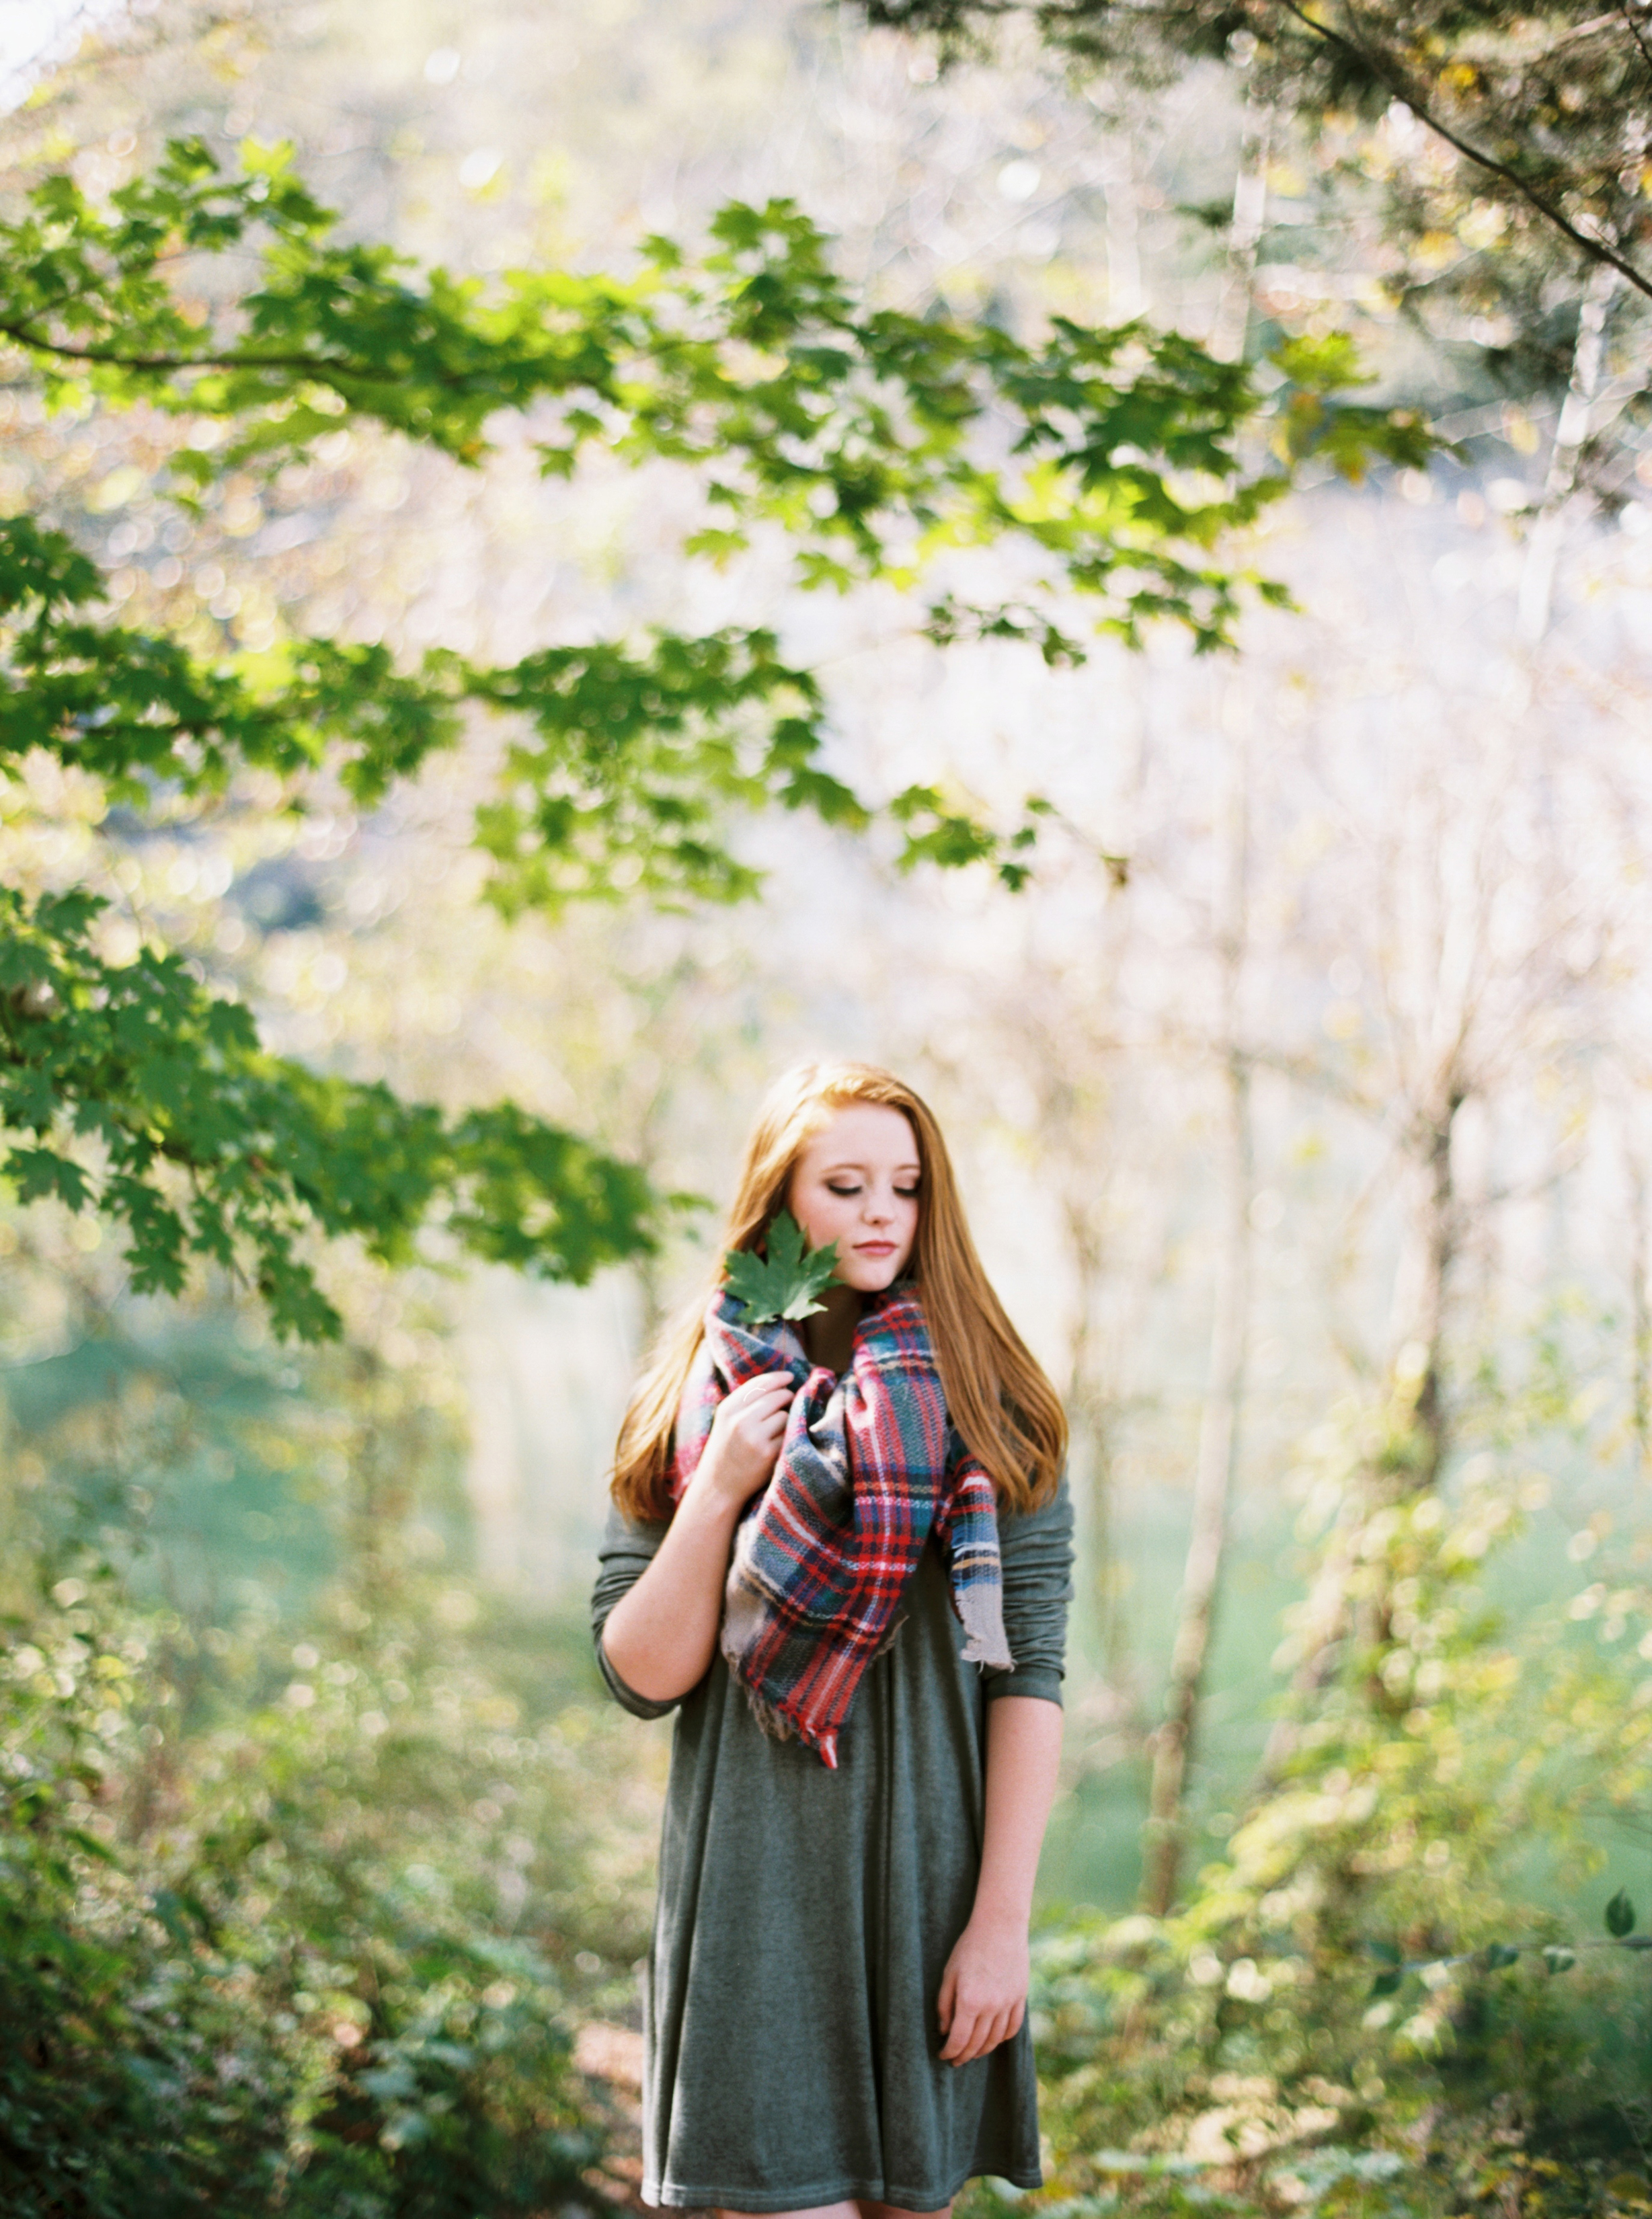 Heather_Senior_Photos_Abigail_Malone_Photography_Knoxville-96.jpg